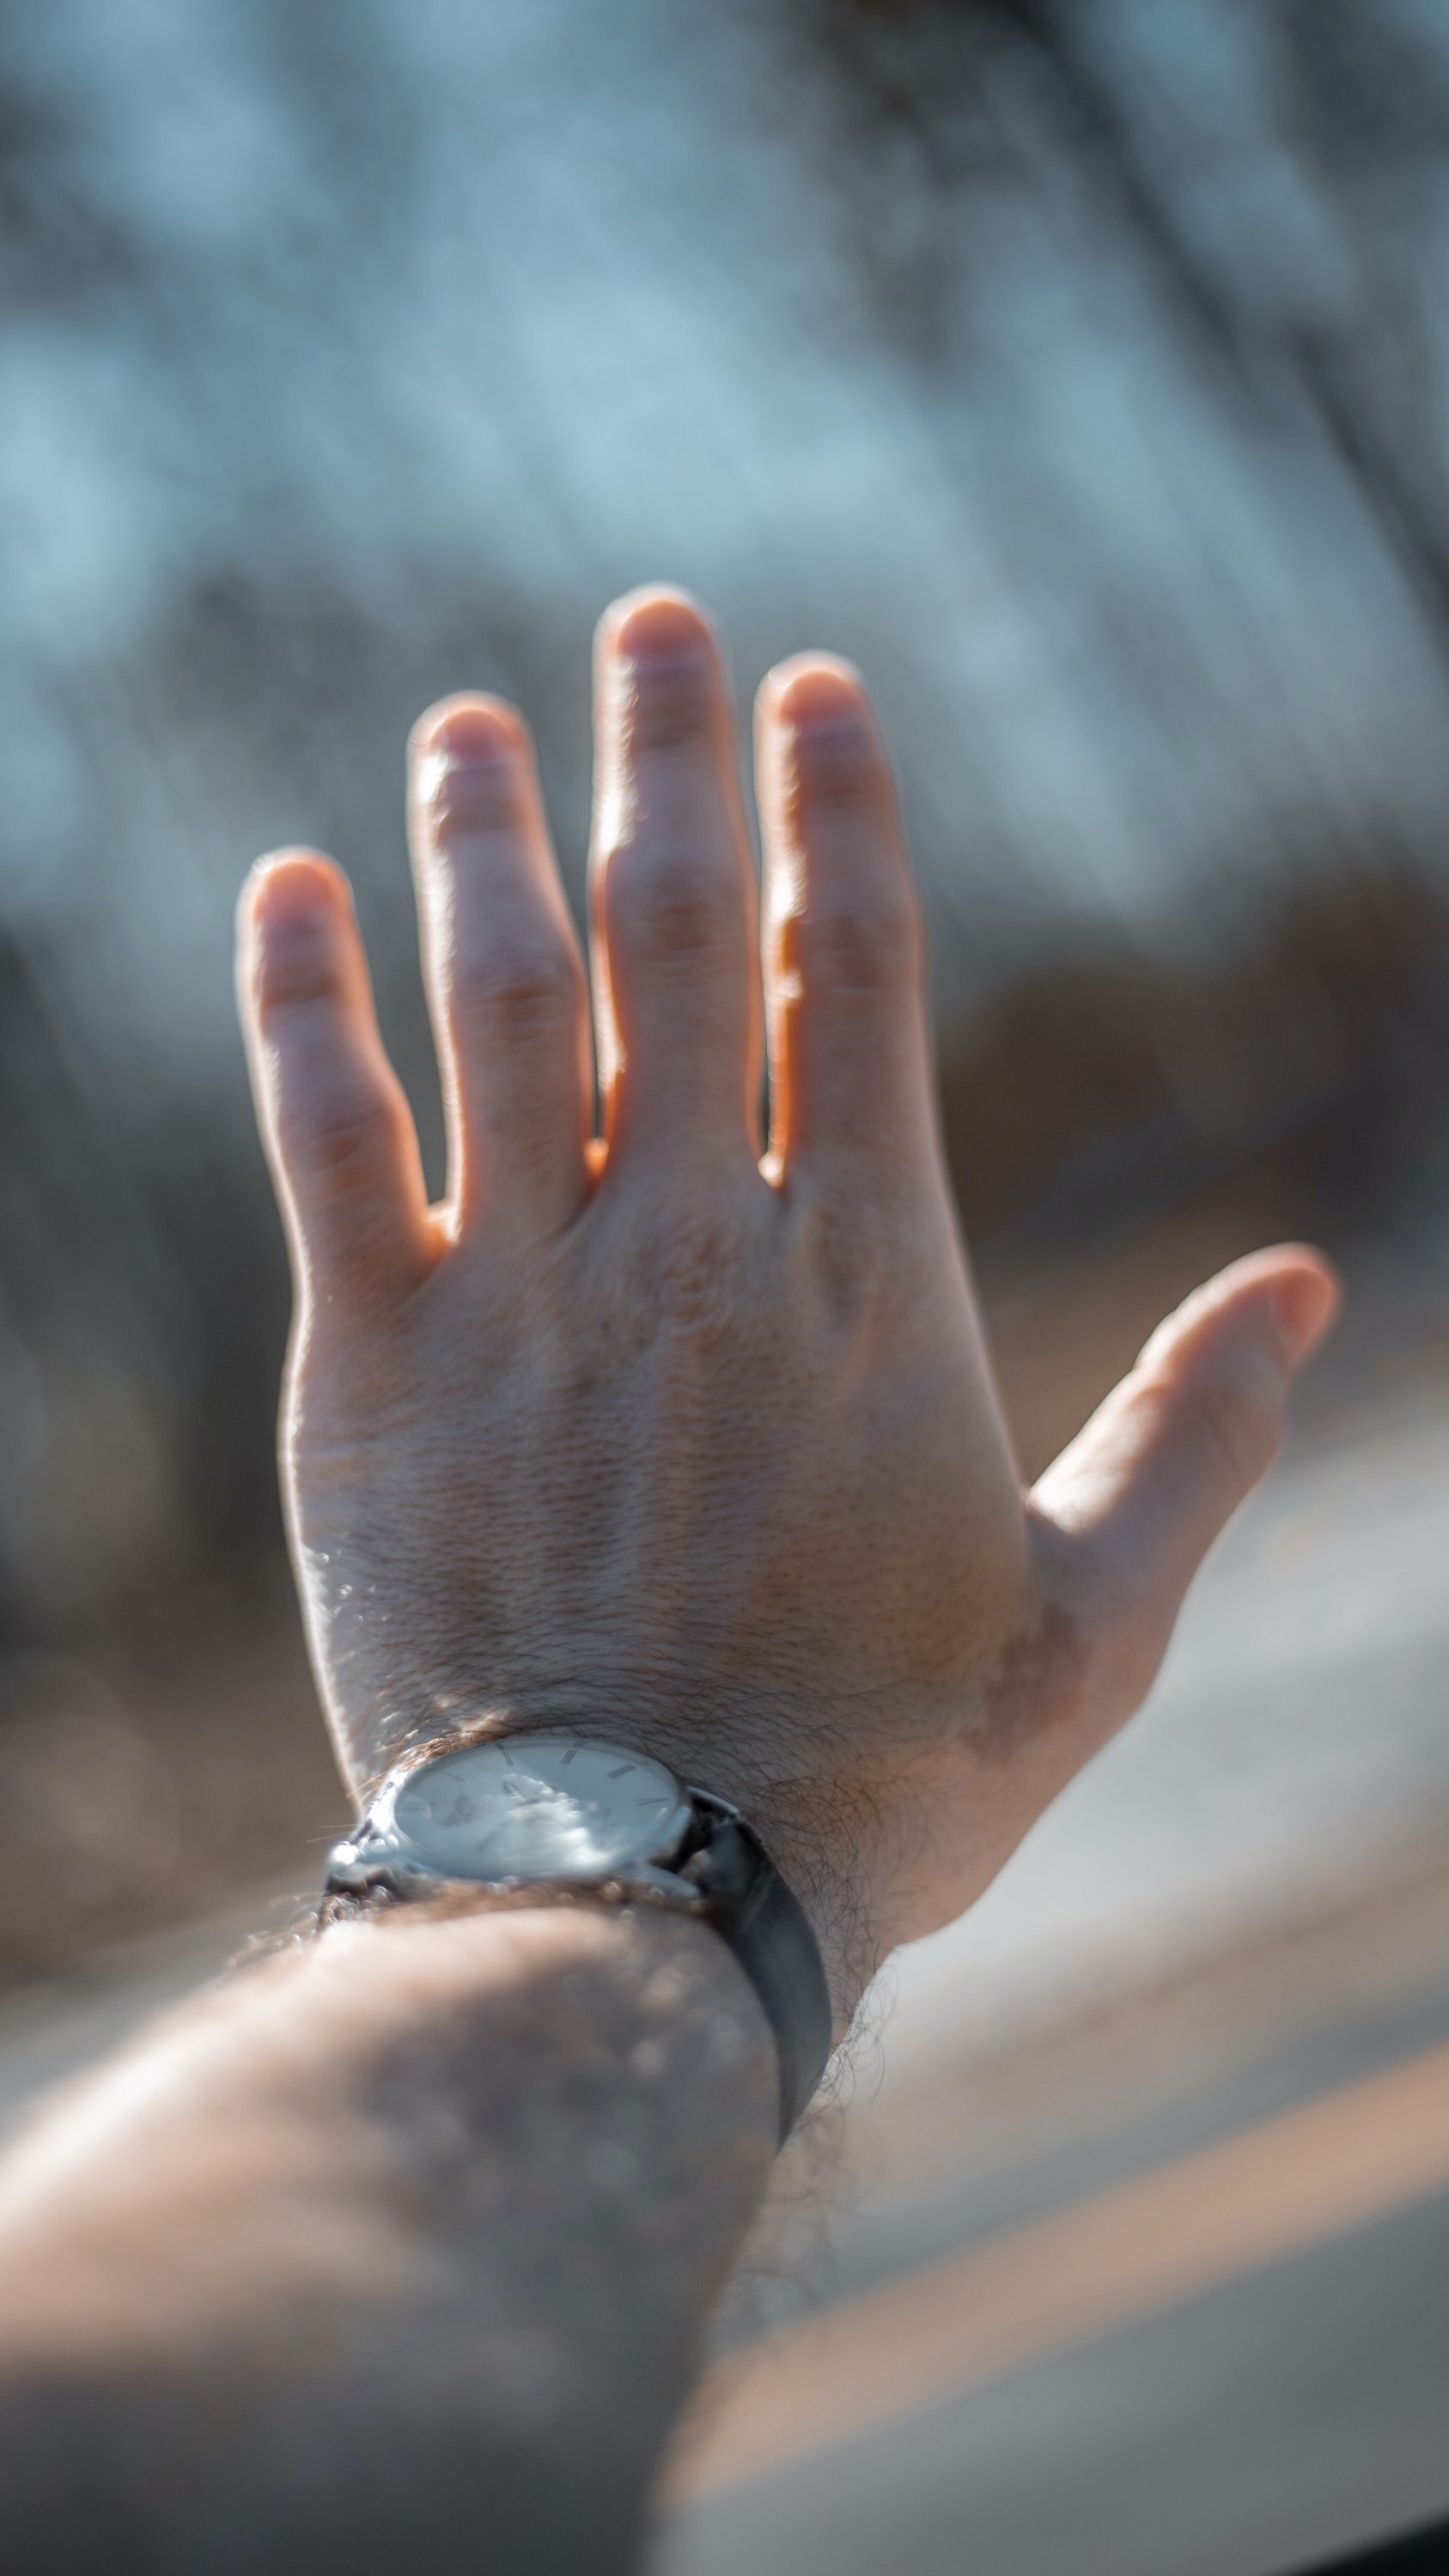 person holding silver-colored analog watch